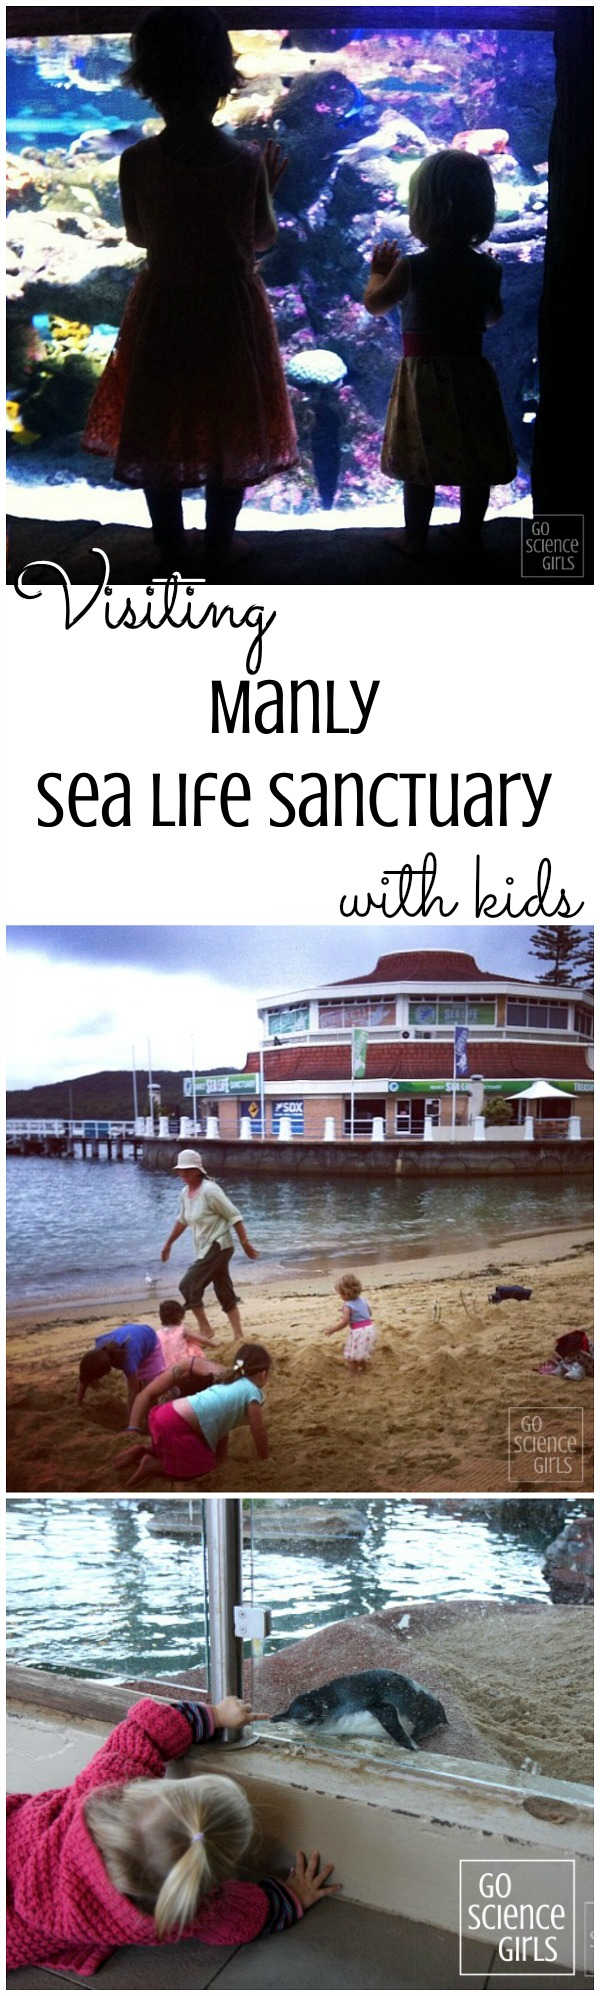 Visiting Manly Sea Life Sanctuary with kids - a review by Go Science Kids